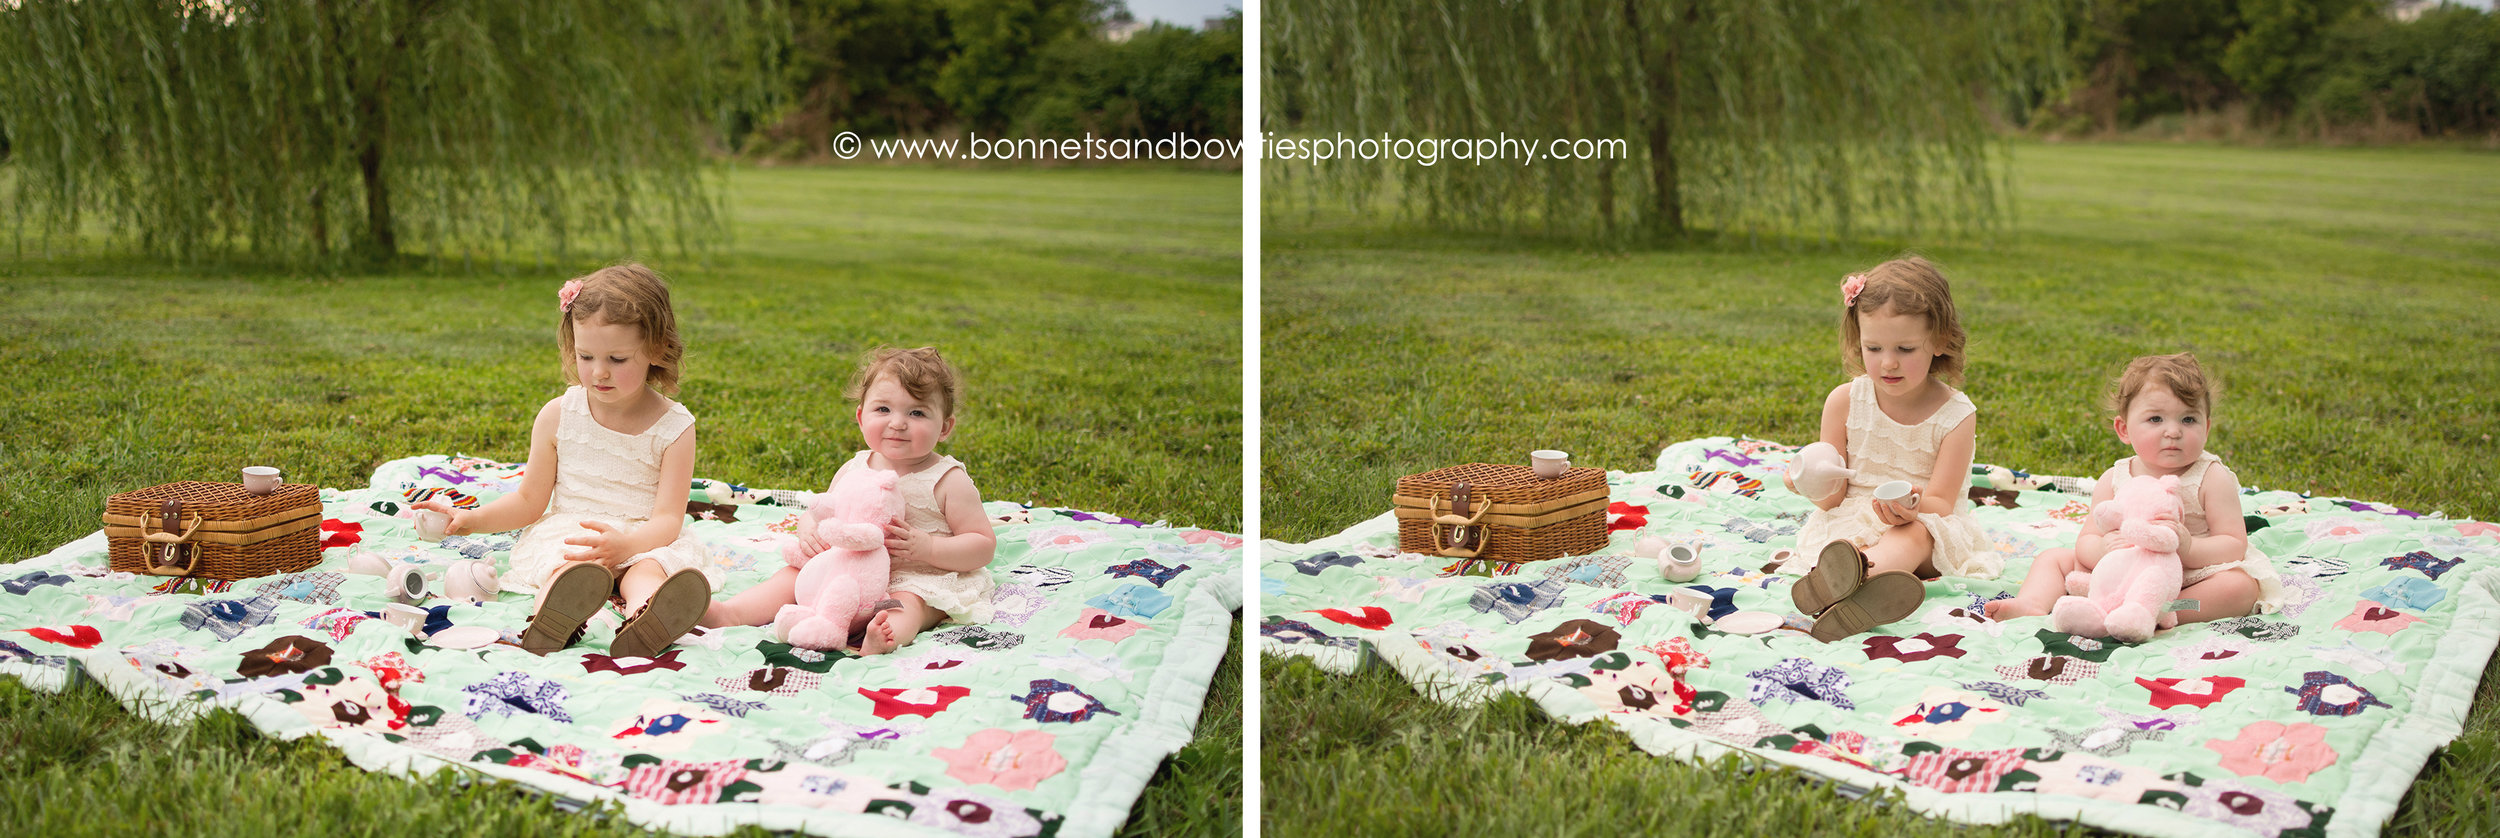 children's photographer in york pa